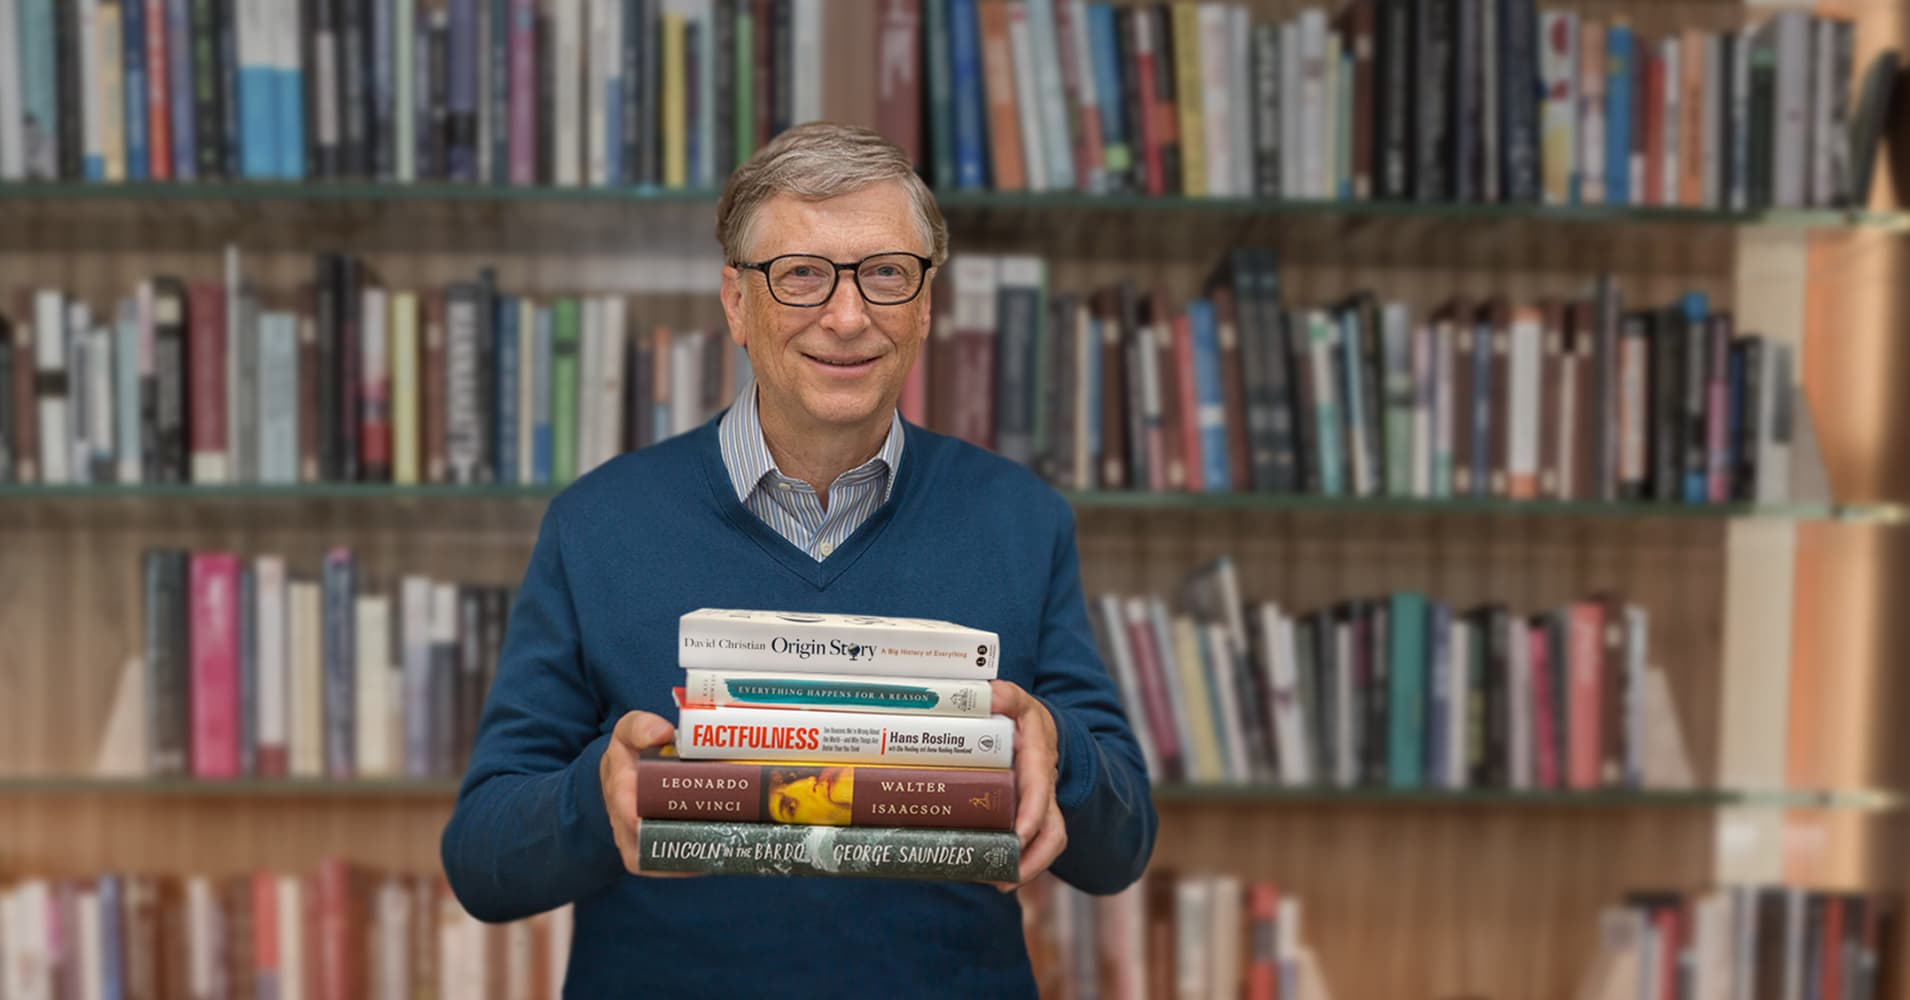 Bill Gates: These 3 books 'opened a new world for me'